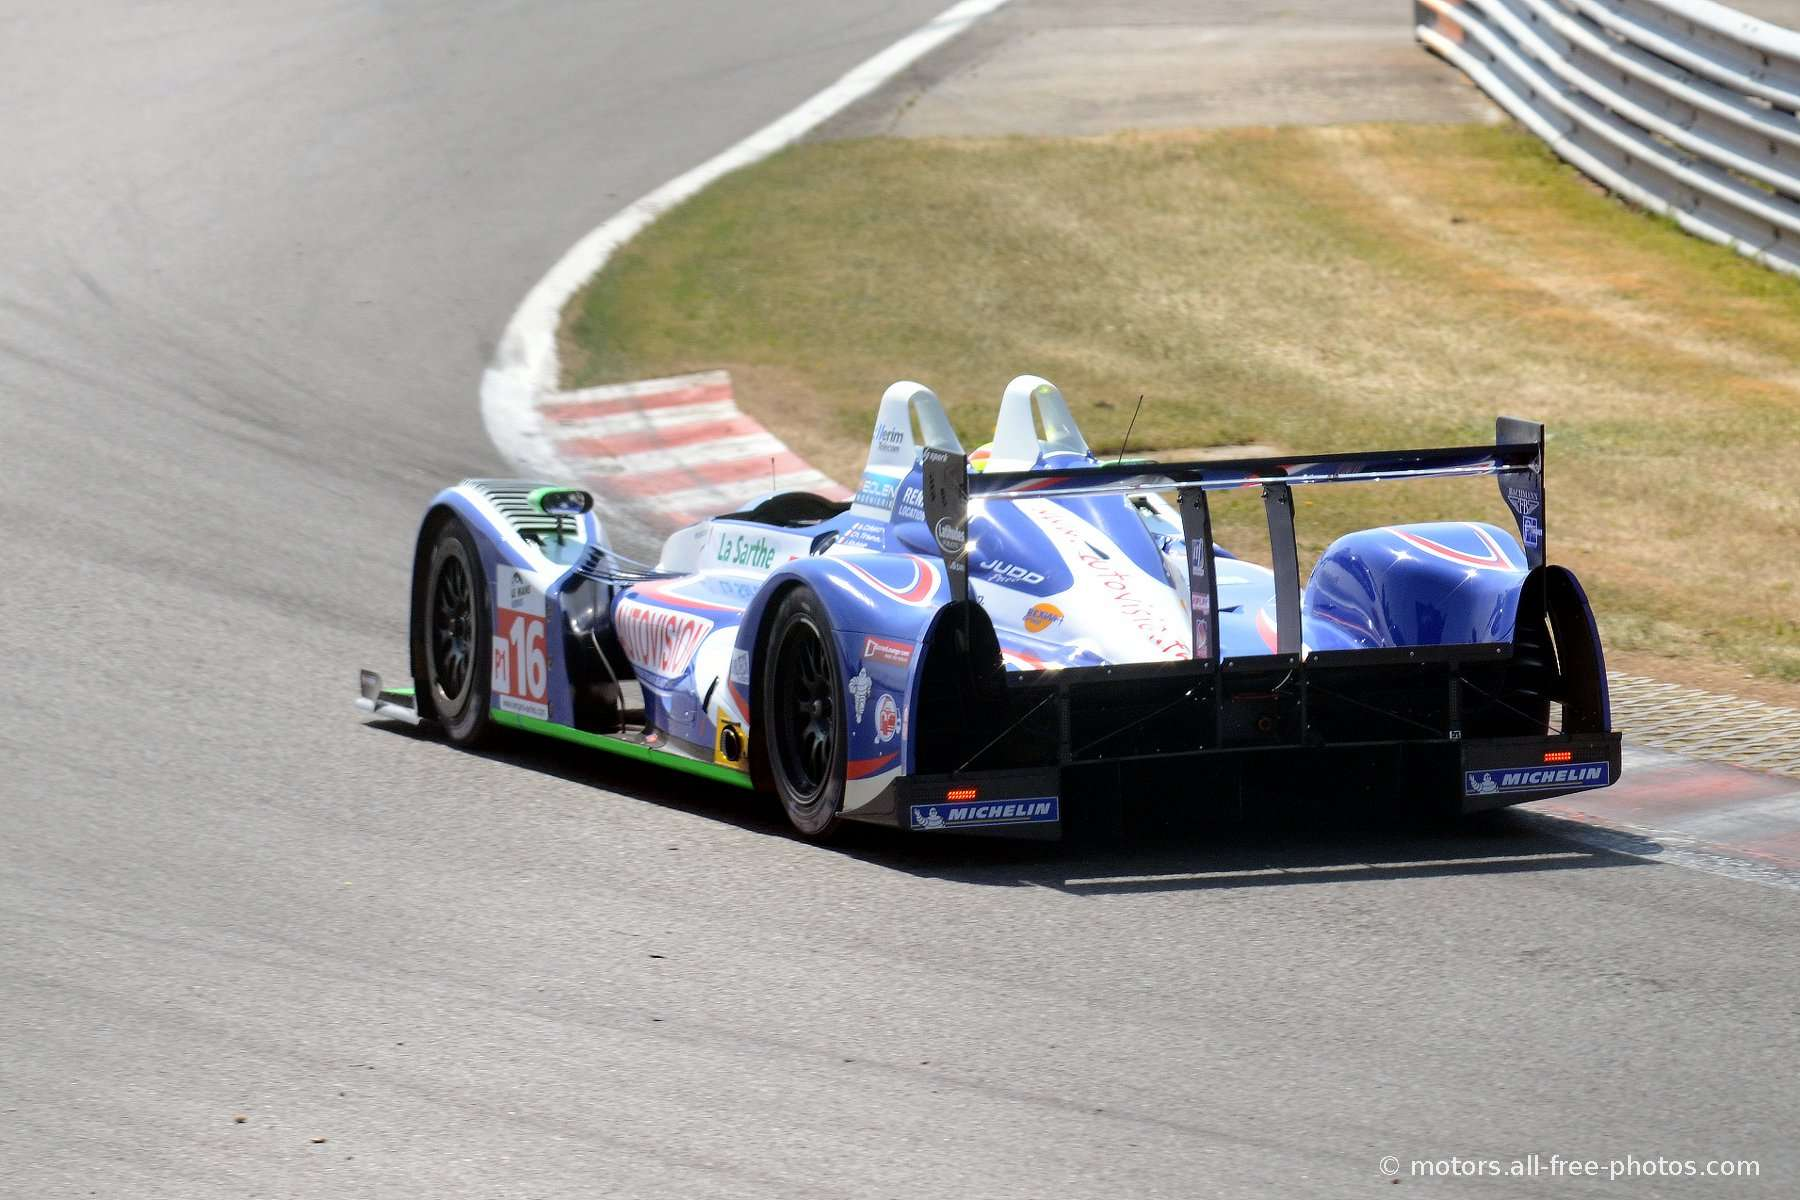 Pescarolo Judd - Team Pescarolo